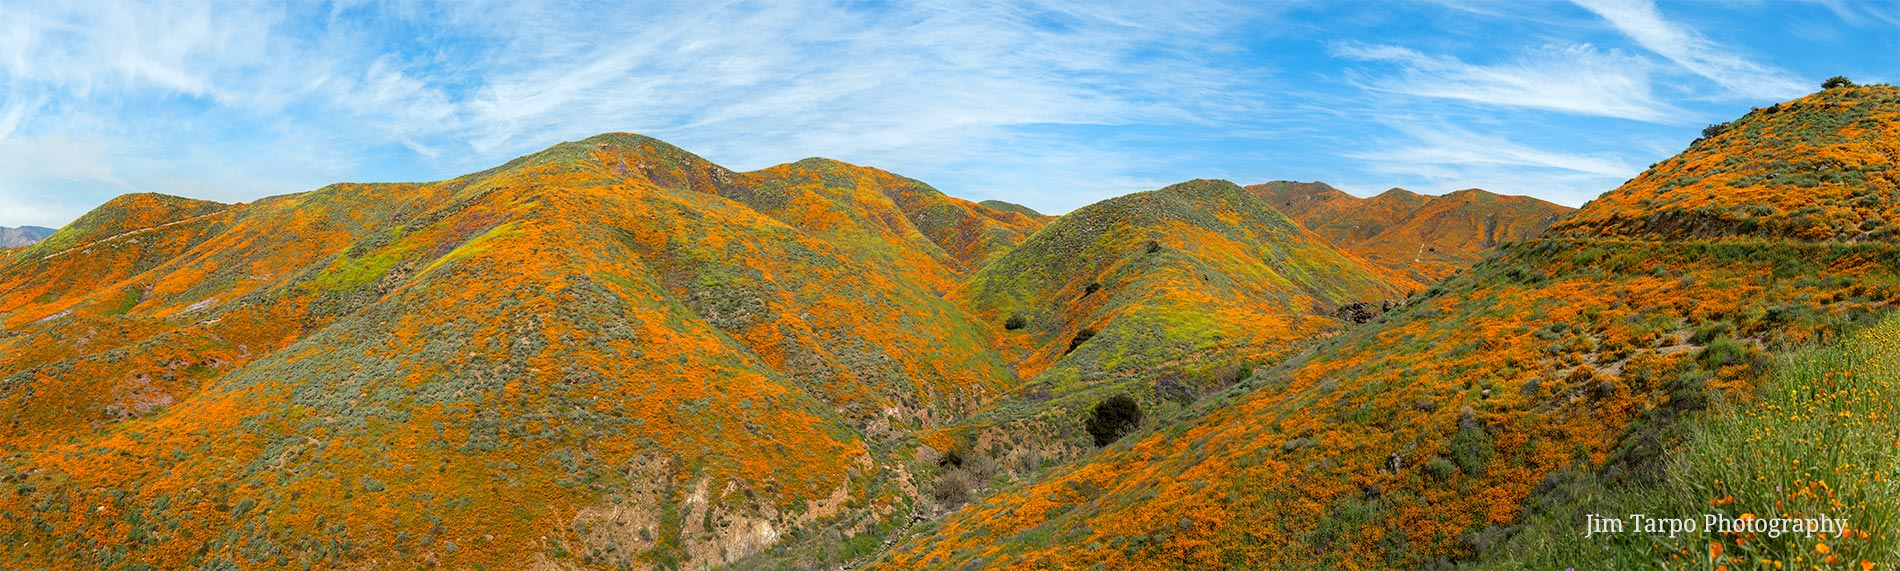 Walker Canyon Poppies Super-Bloom